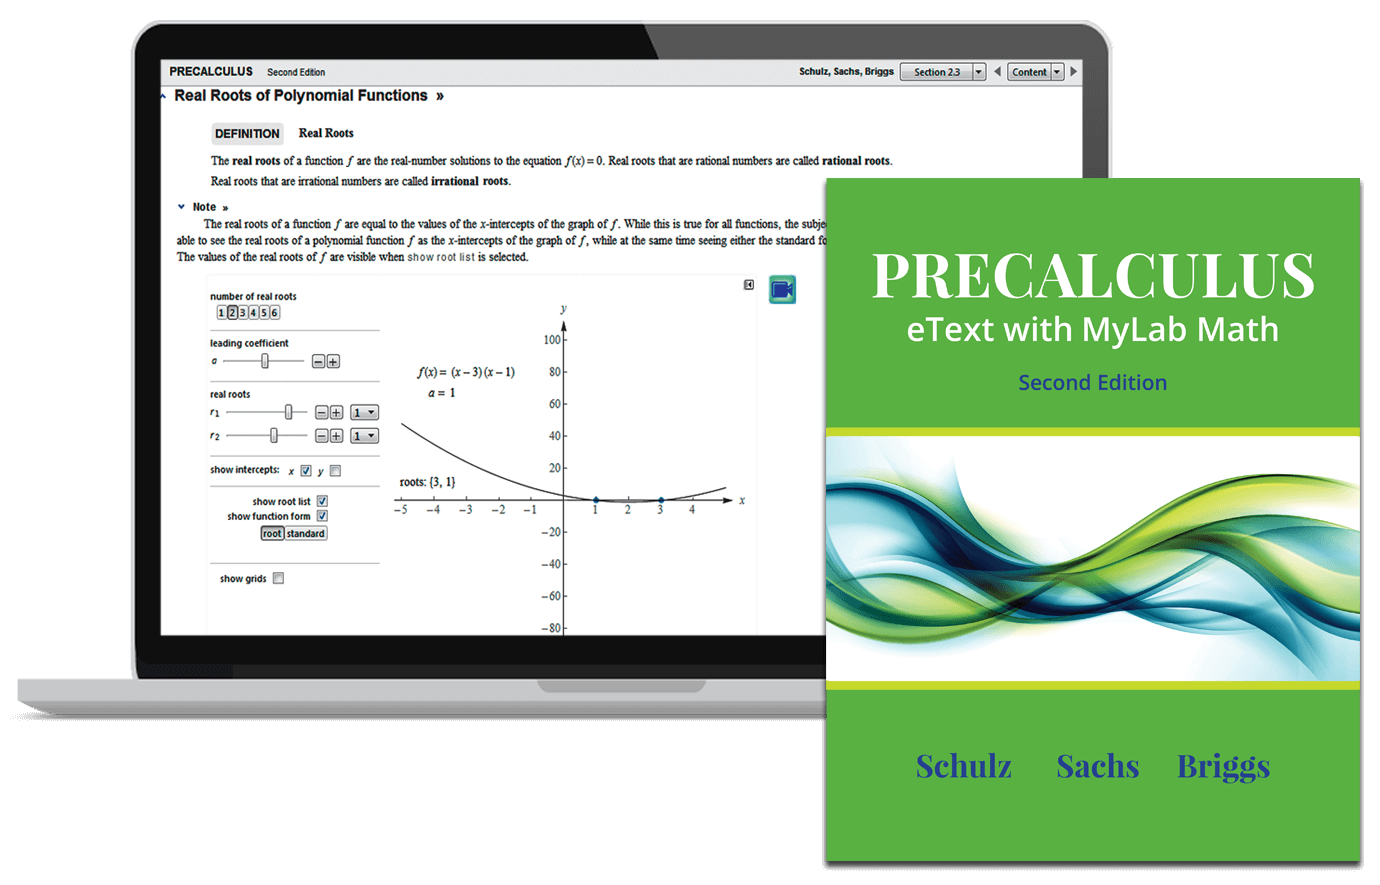 Schulz, Sachs & Briggs, Precalculus eText with MyLab Math and ...